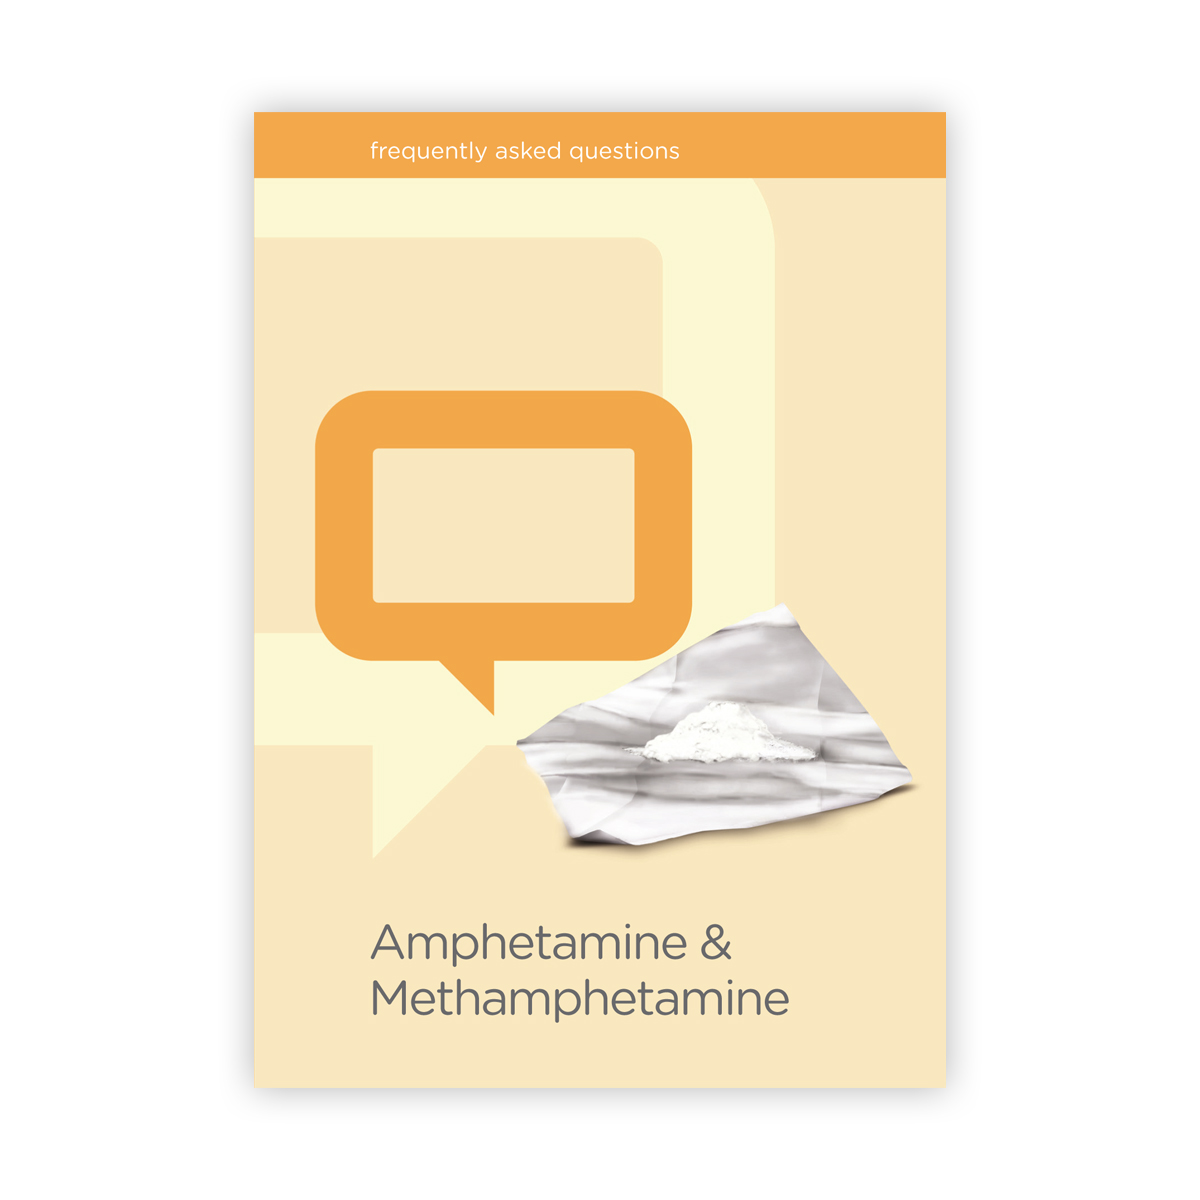 Amphetamine and Methamphetamine FAQs